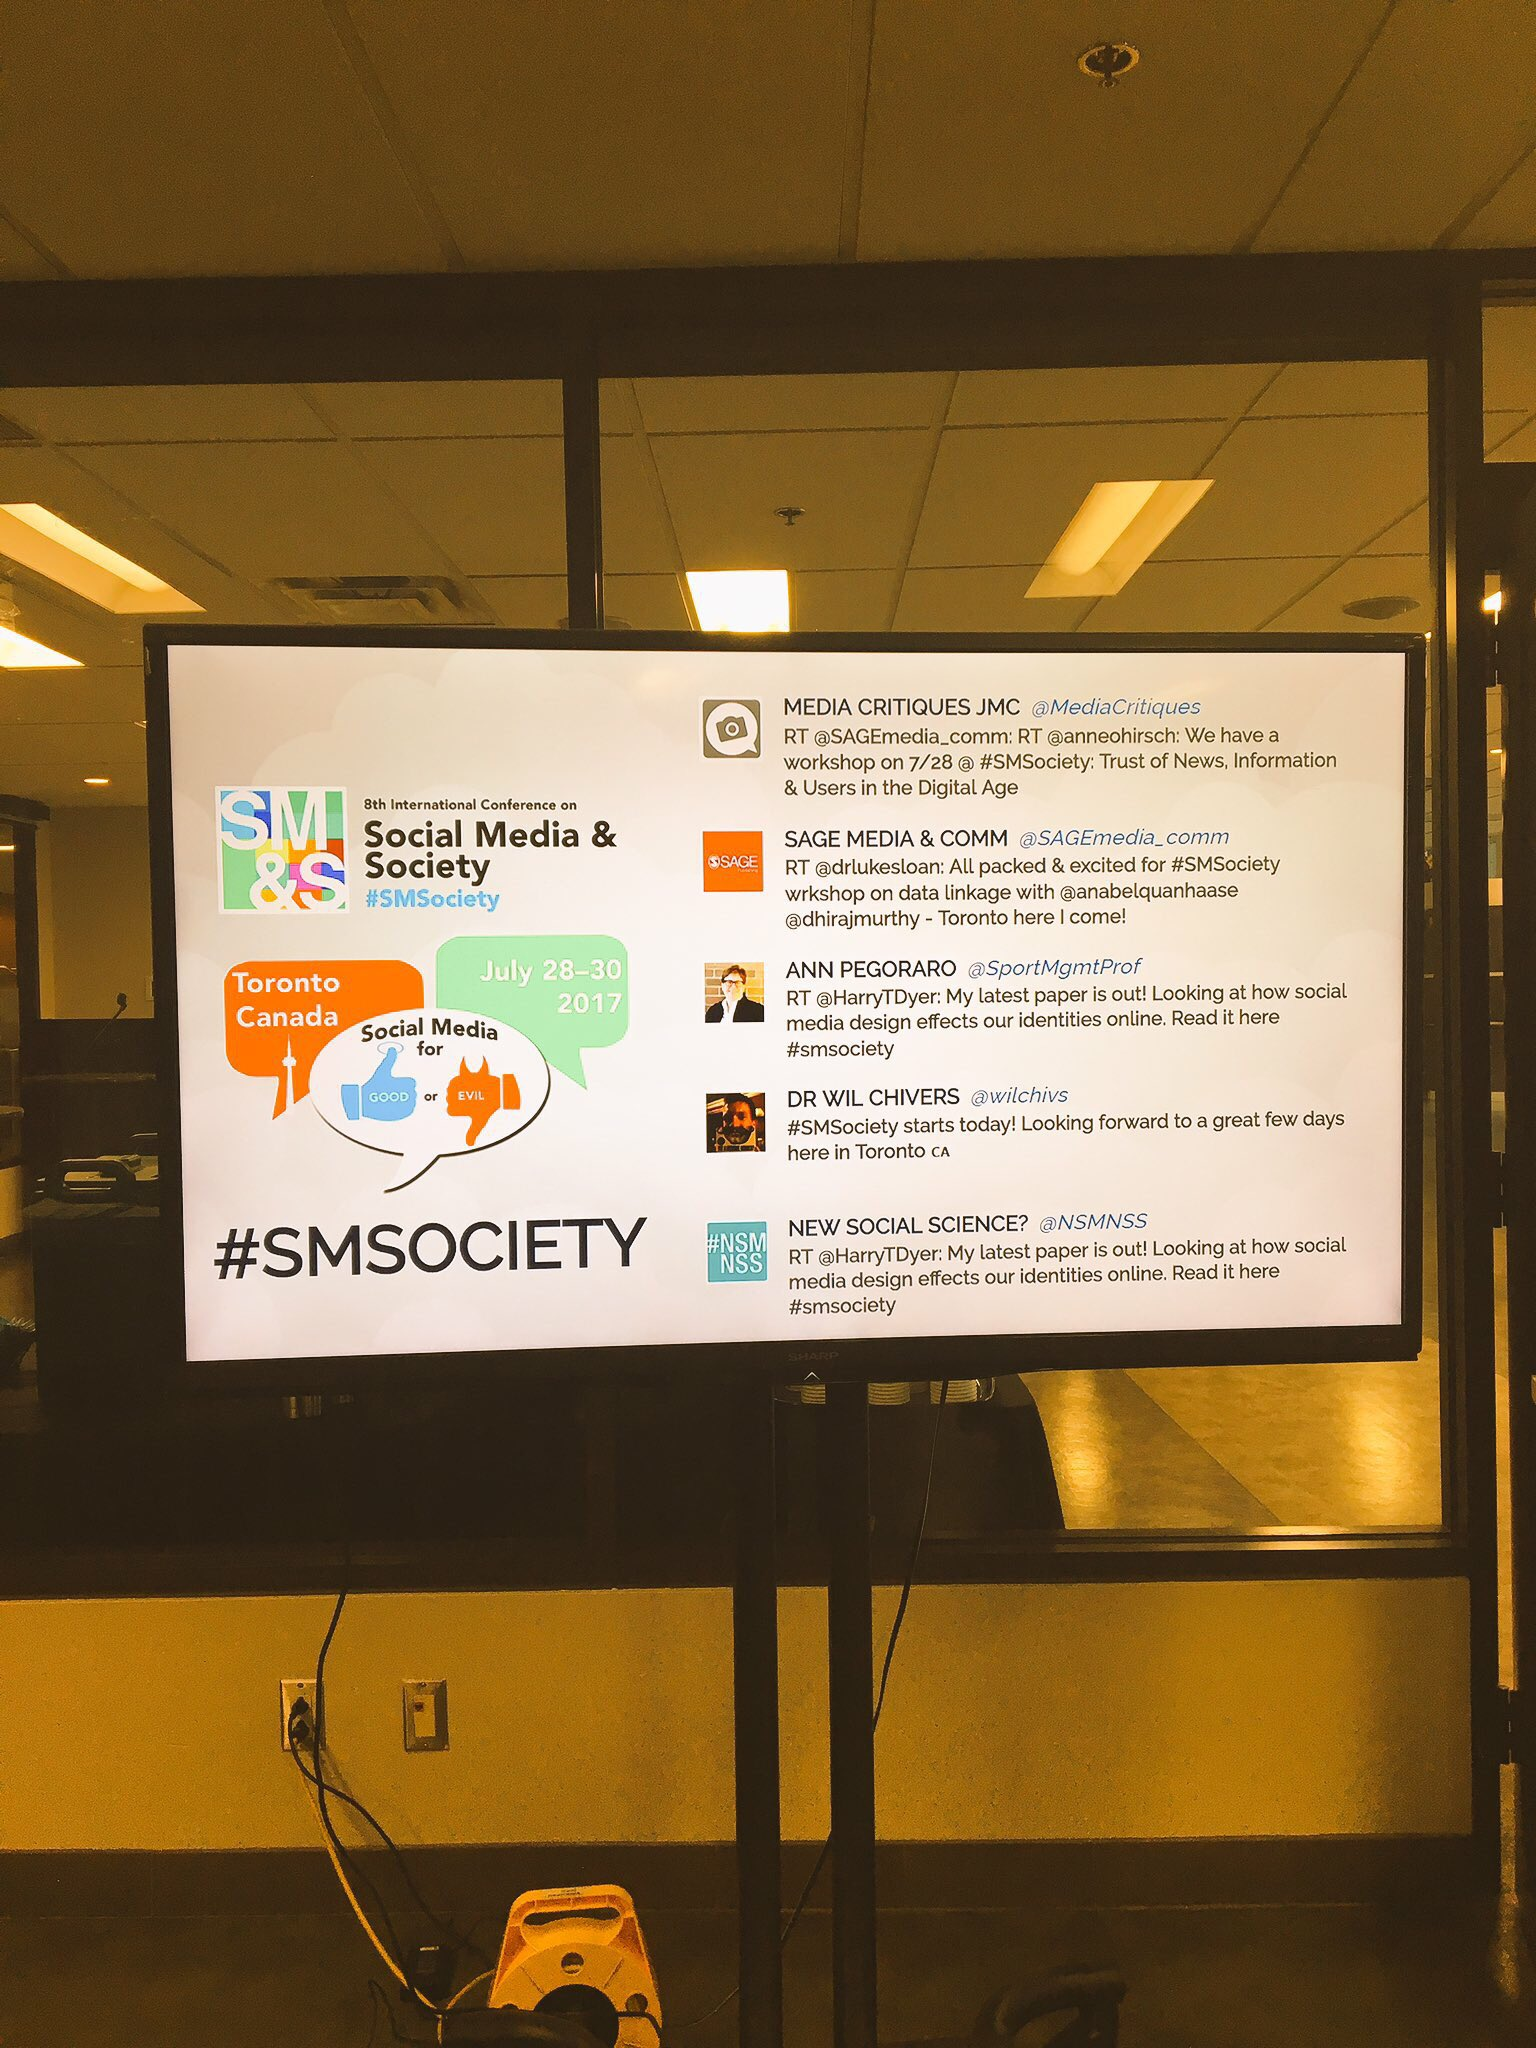 Tweeting about #SMSociety attendees tweeting....How meta ☺️ Day 1 begins now!!! Looking forward to saying hi to everyone! #toronto https://t.co/8KgRATa1Zu